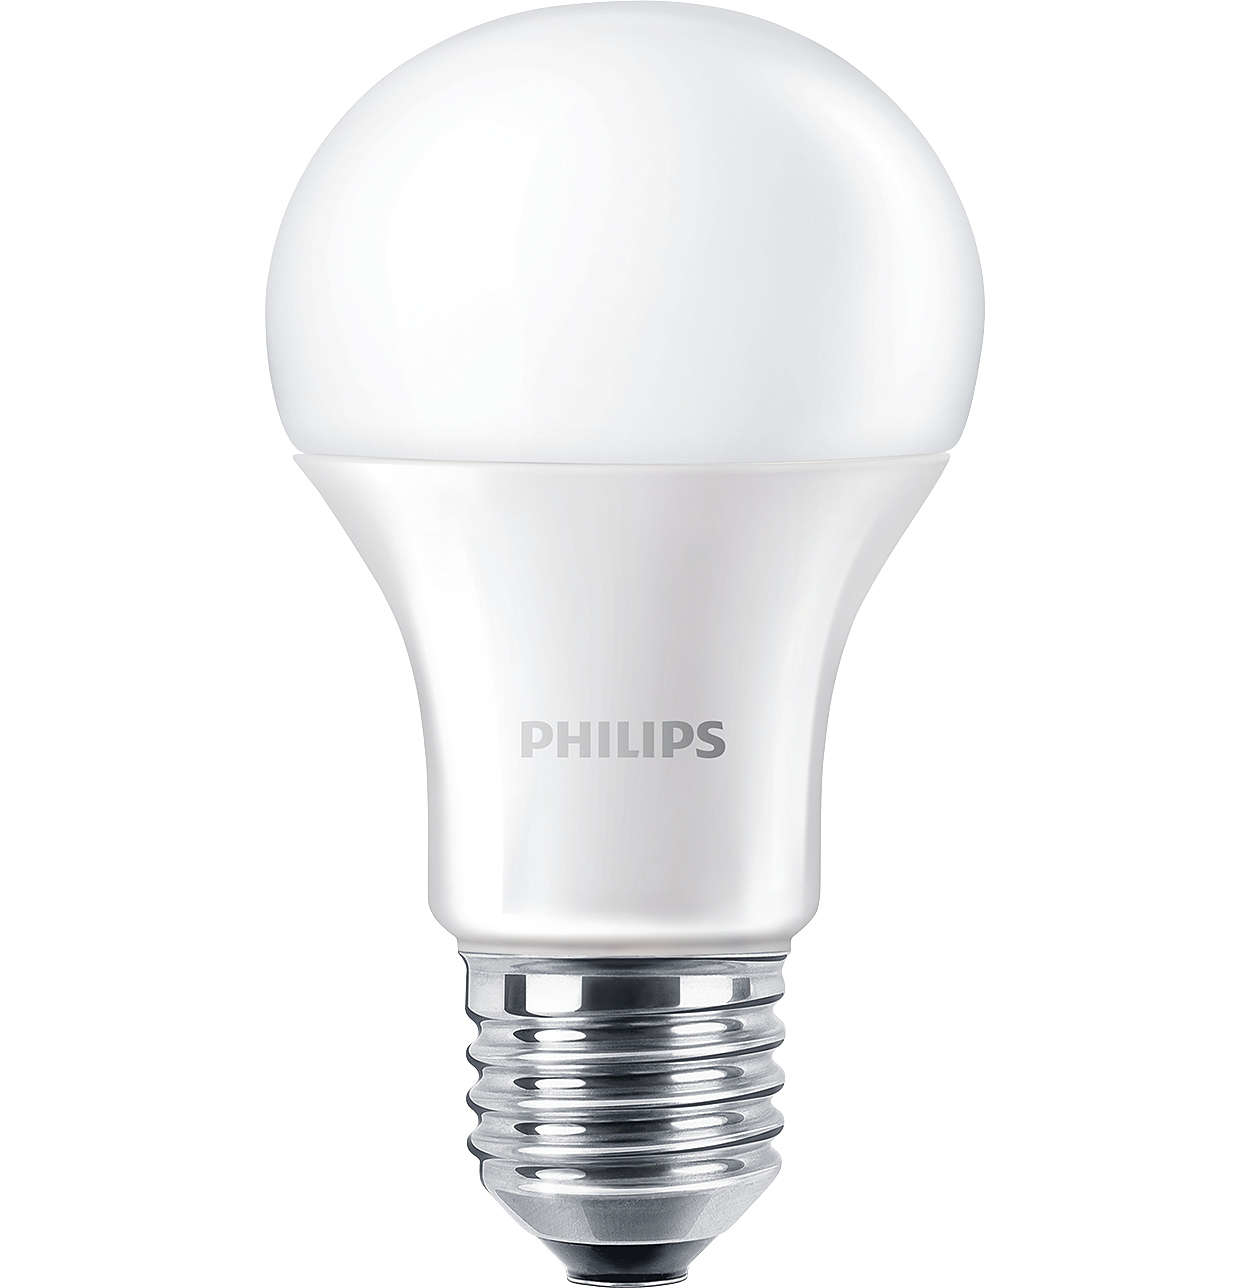 Philips Lampadina a LED - Lampadina a LED - Core100830